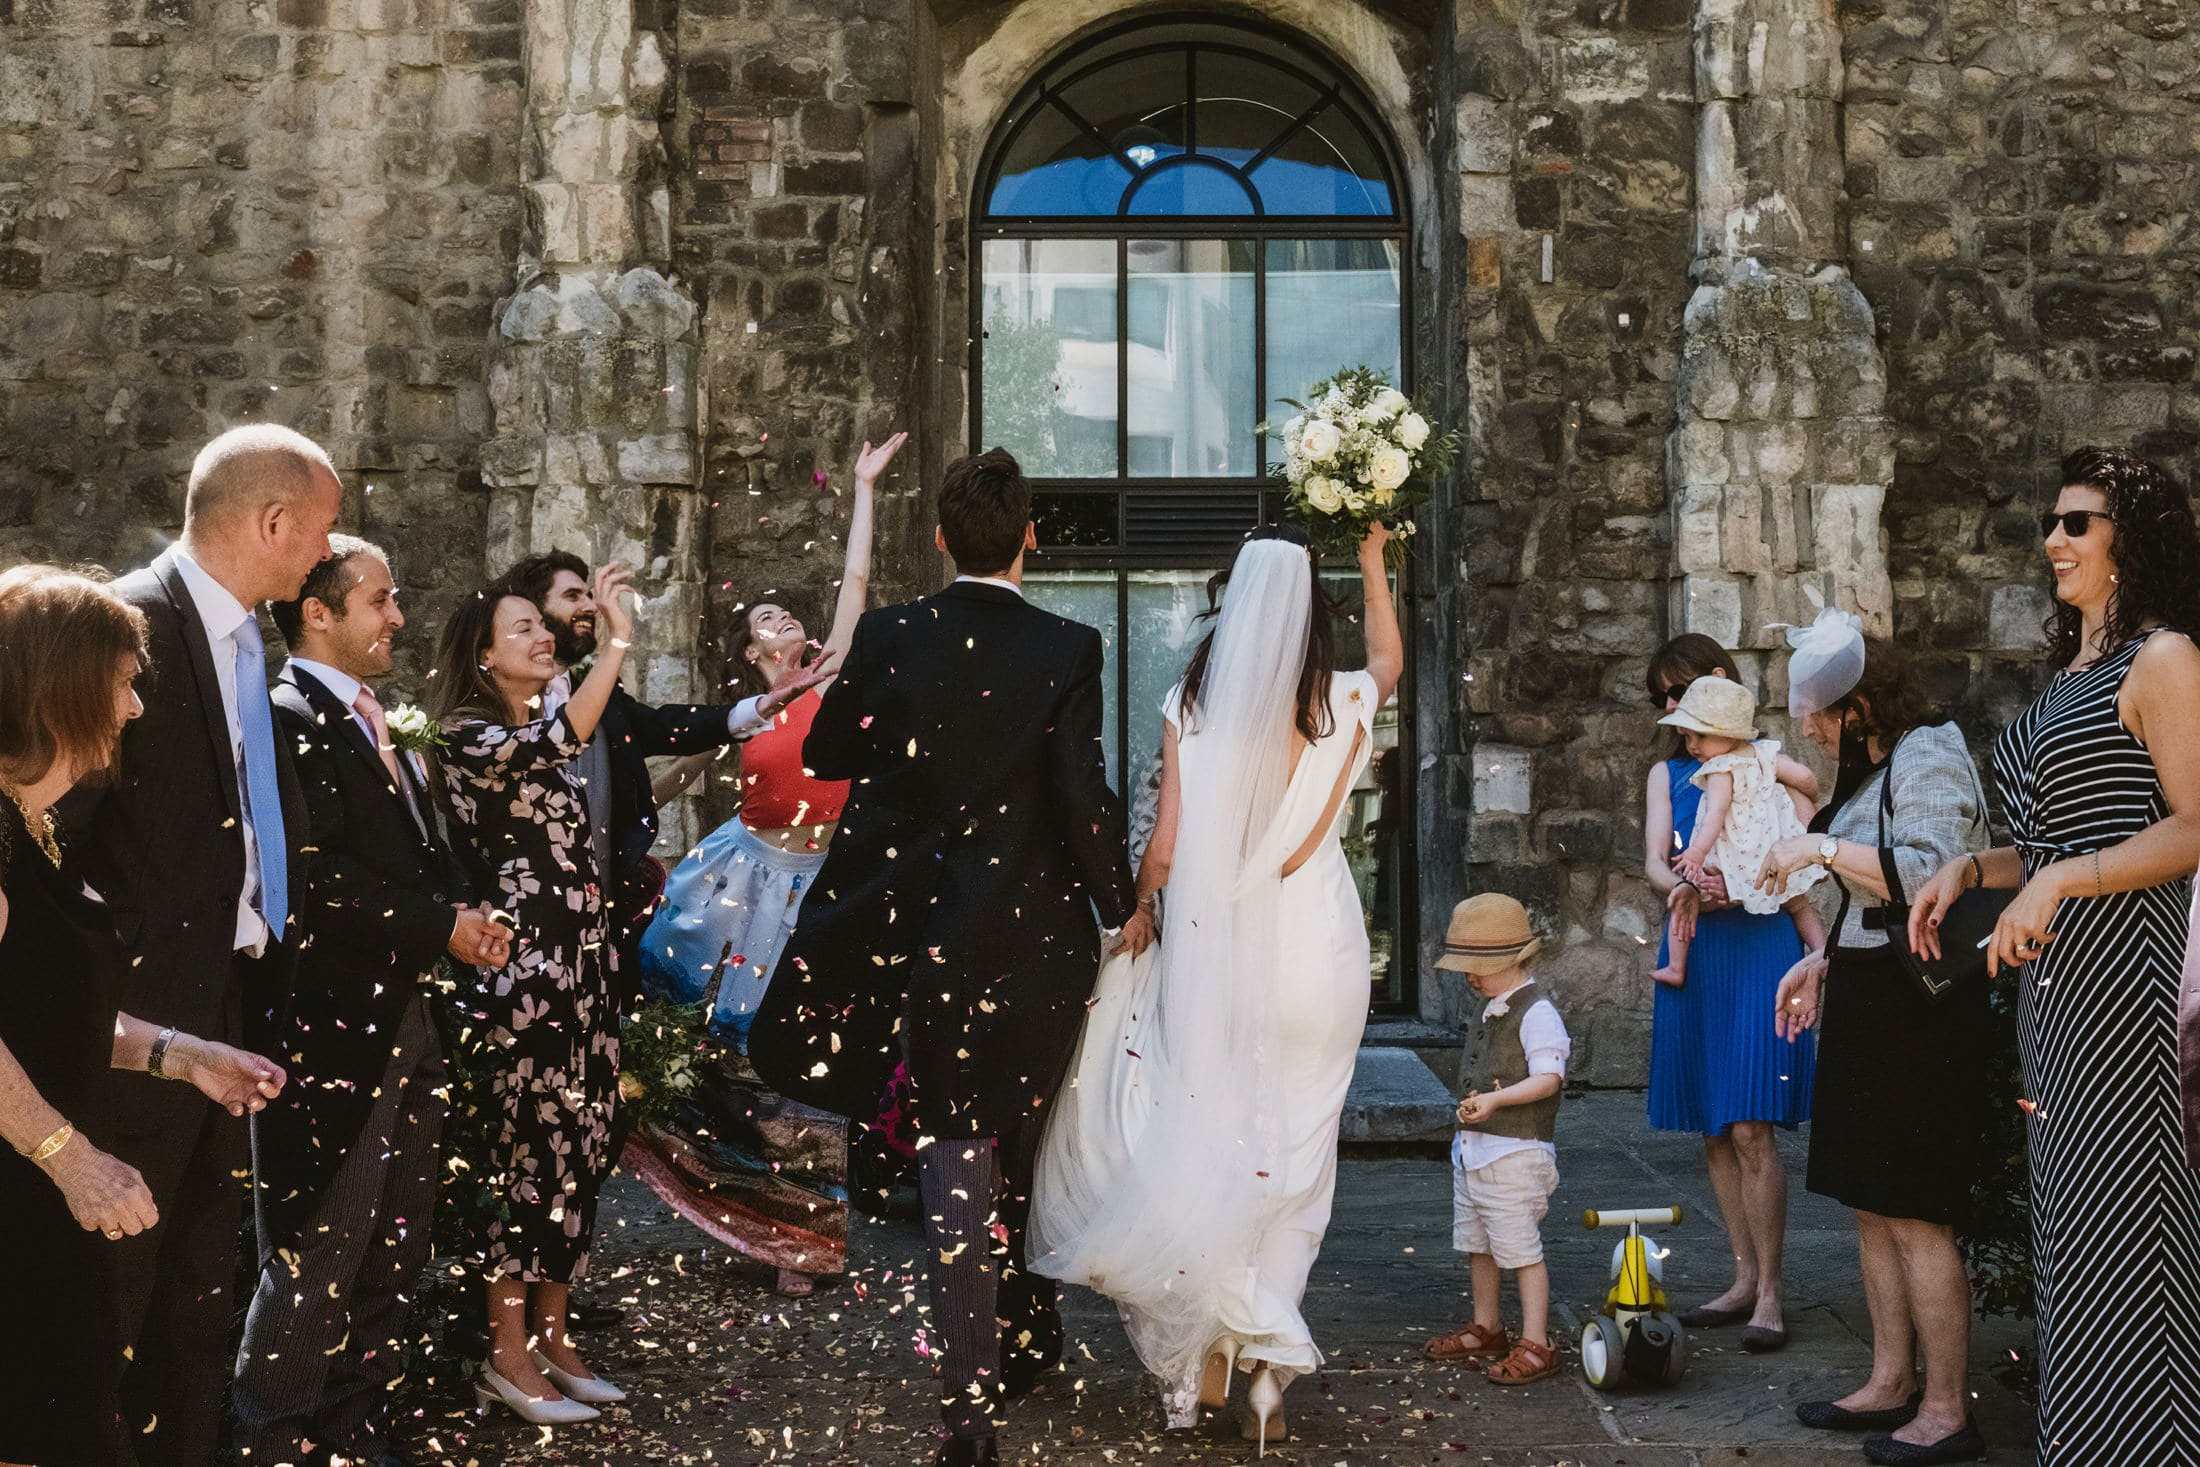 Bride and groom walk back through a confetti line following their micro wedding ceremony